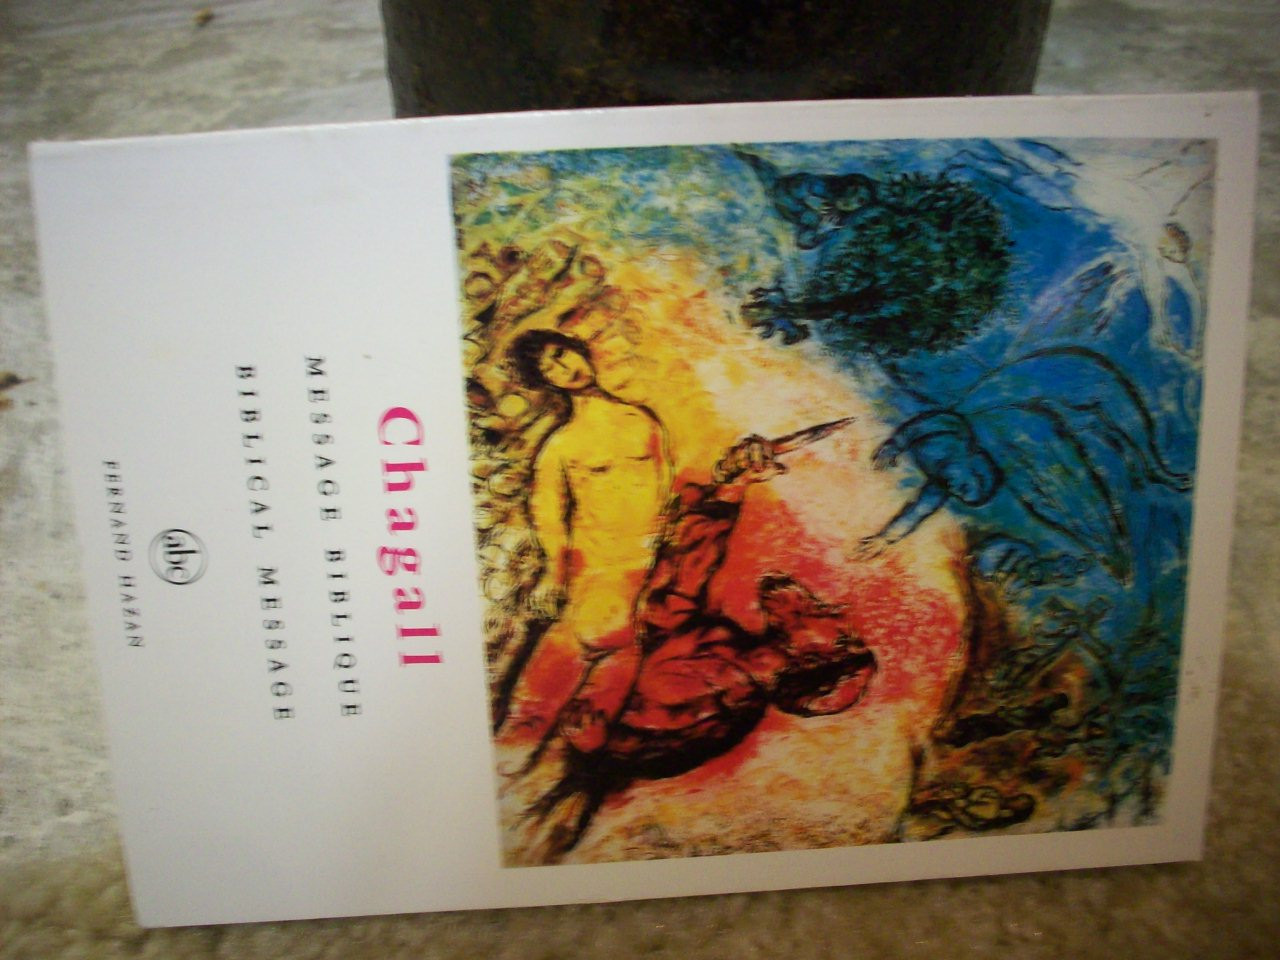 """Chagall, Marc """"Biblical Message"""" 1975 Book Signed Autograph Color Illustrations"""